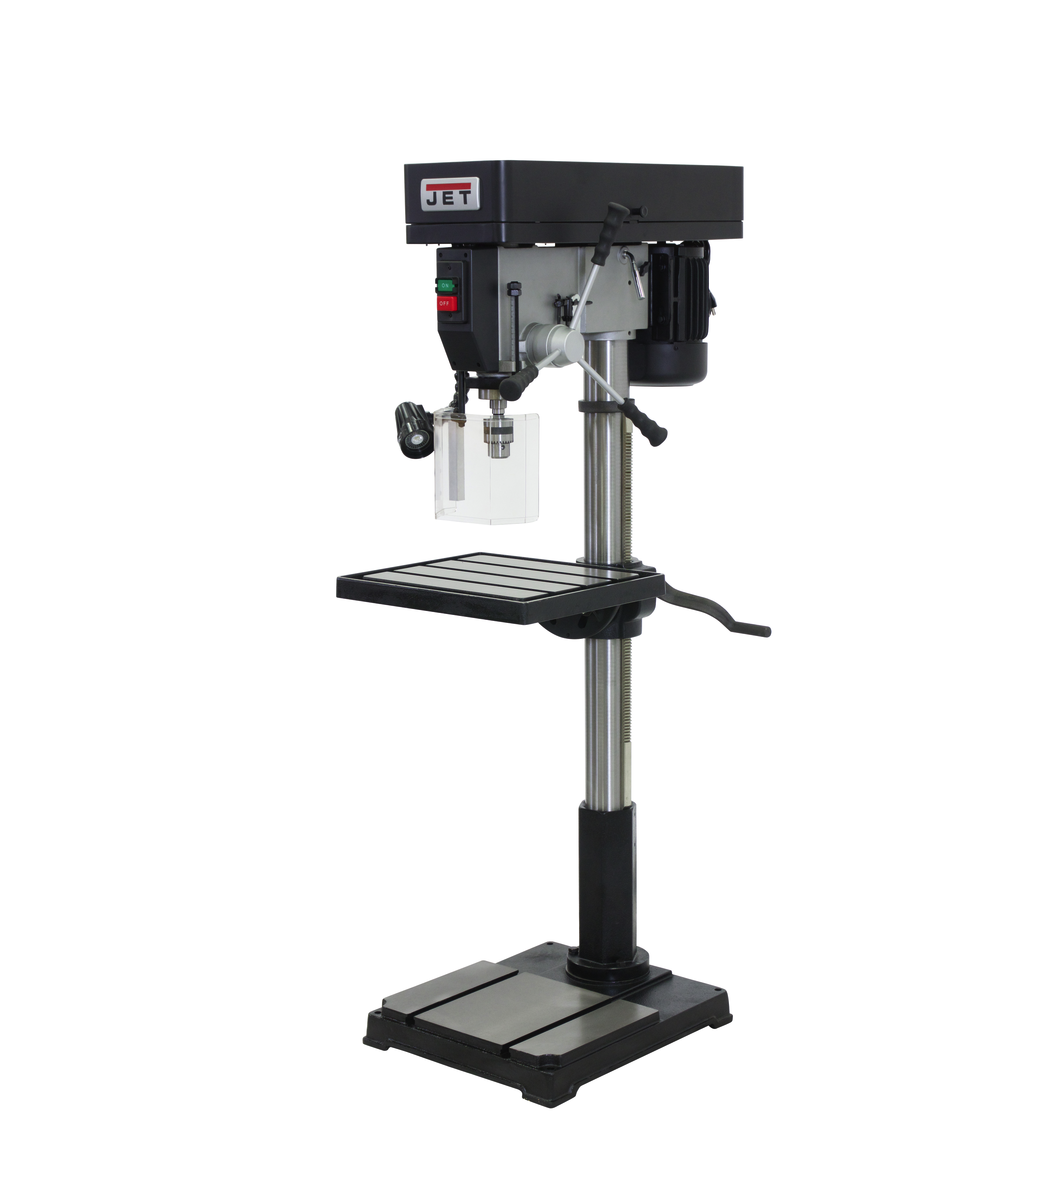 "IDP-22, 22"" INDUSTRIAL DRILL PRESS"